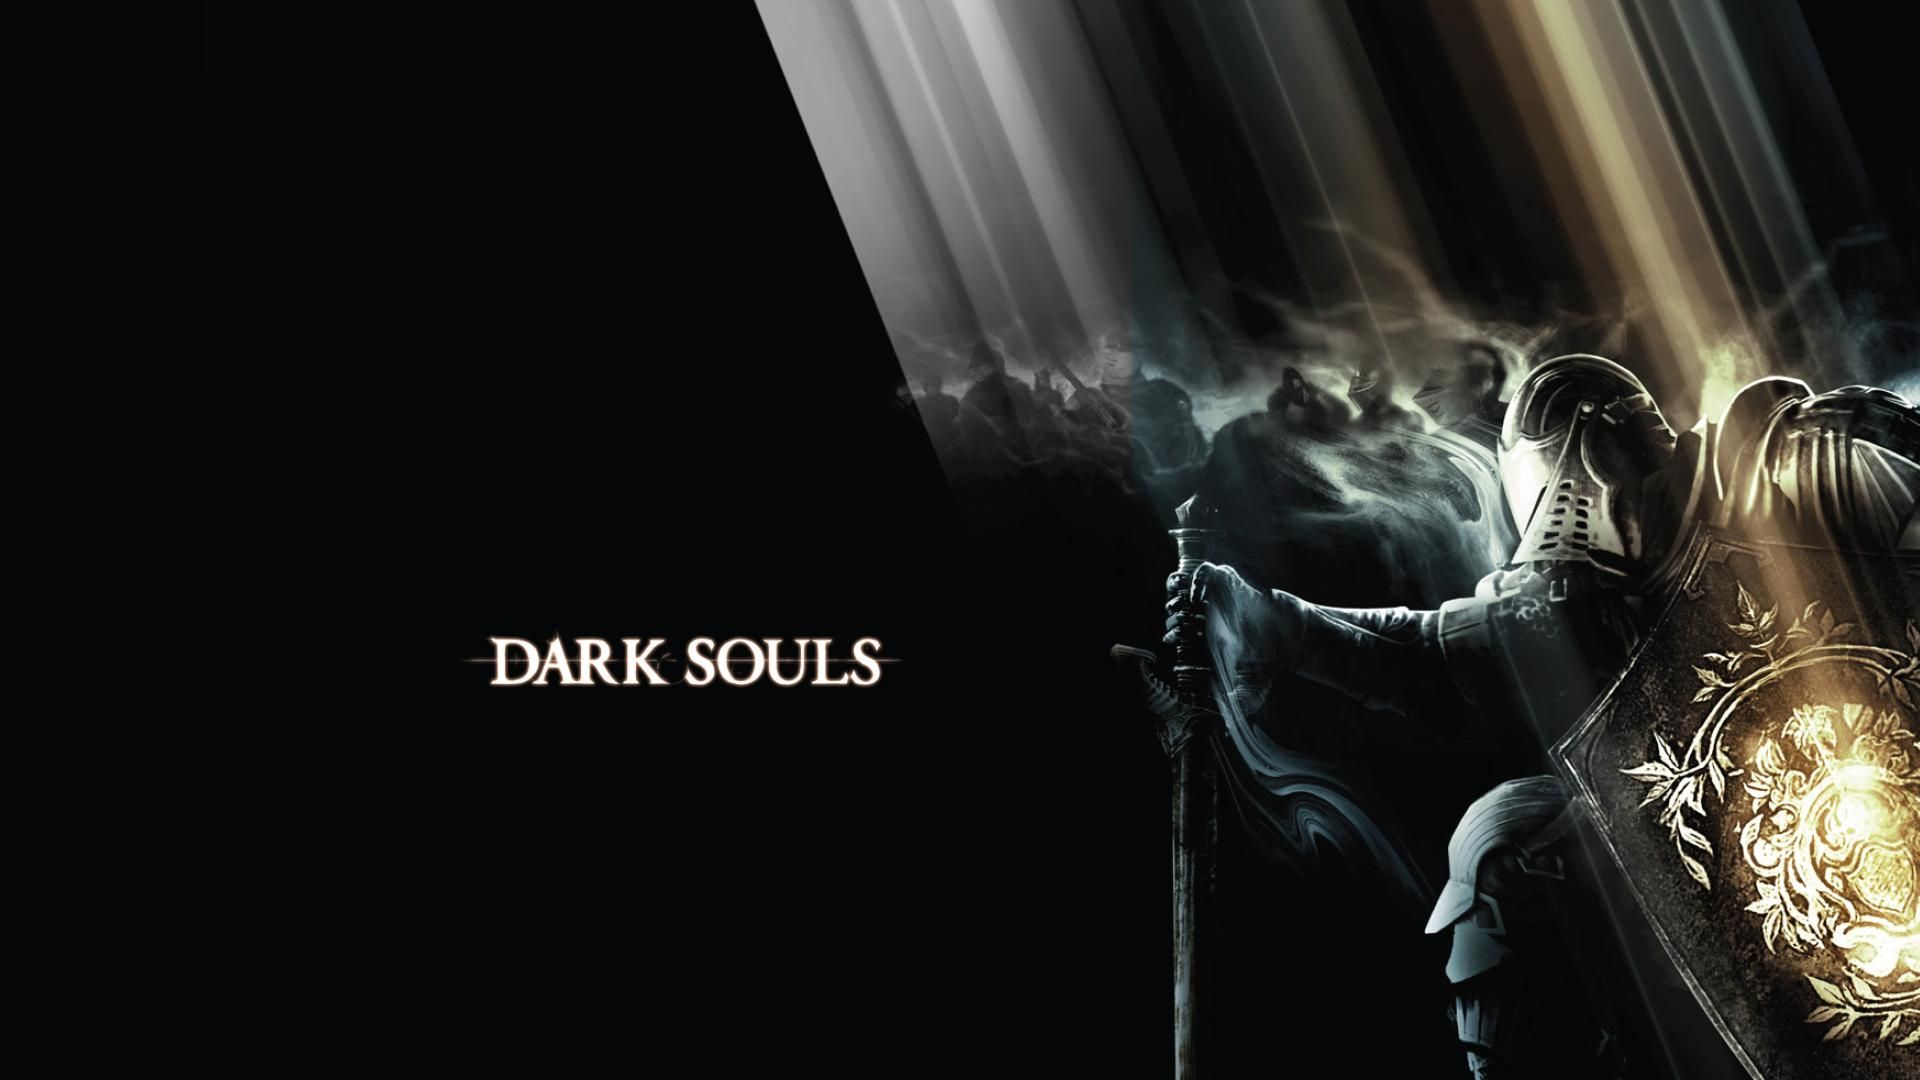 Dark souls dark background wallpaperg 19201080 pixels dark souls dark background wallpaperg 19201080 pixels voltagebd Images